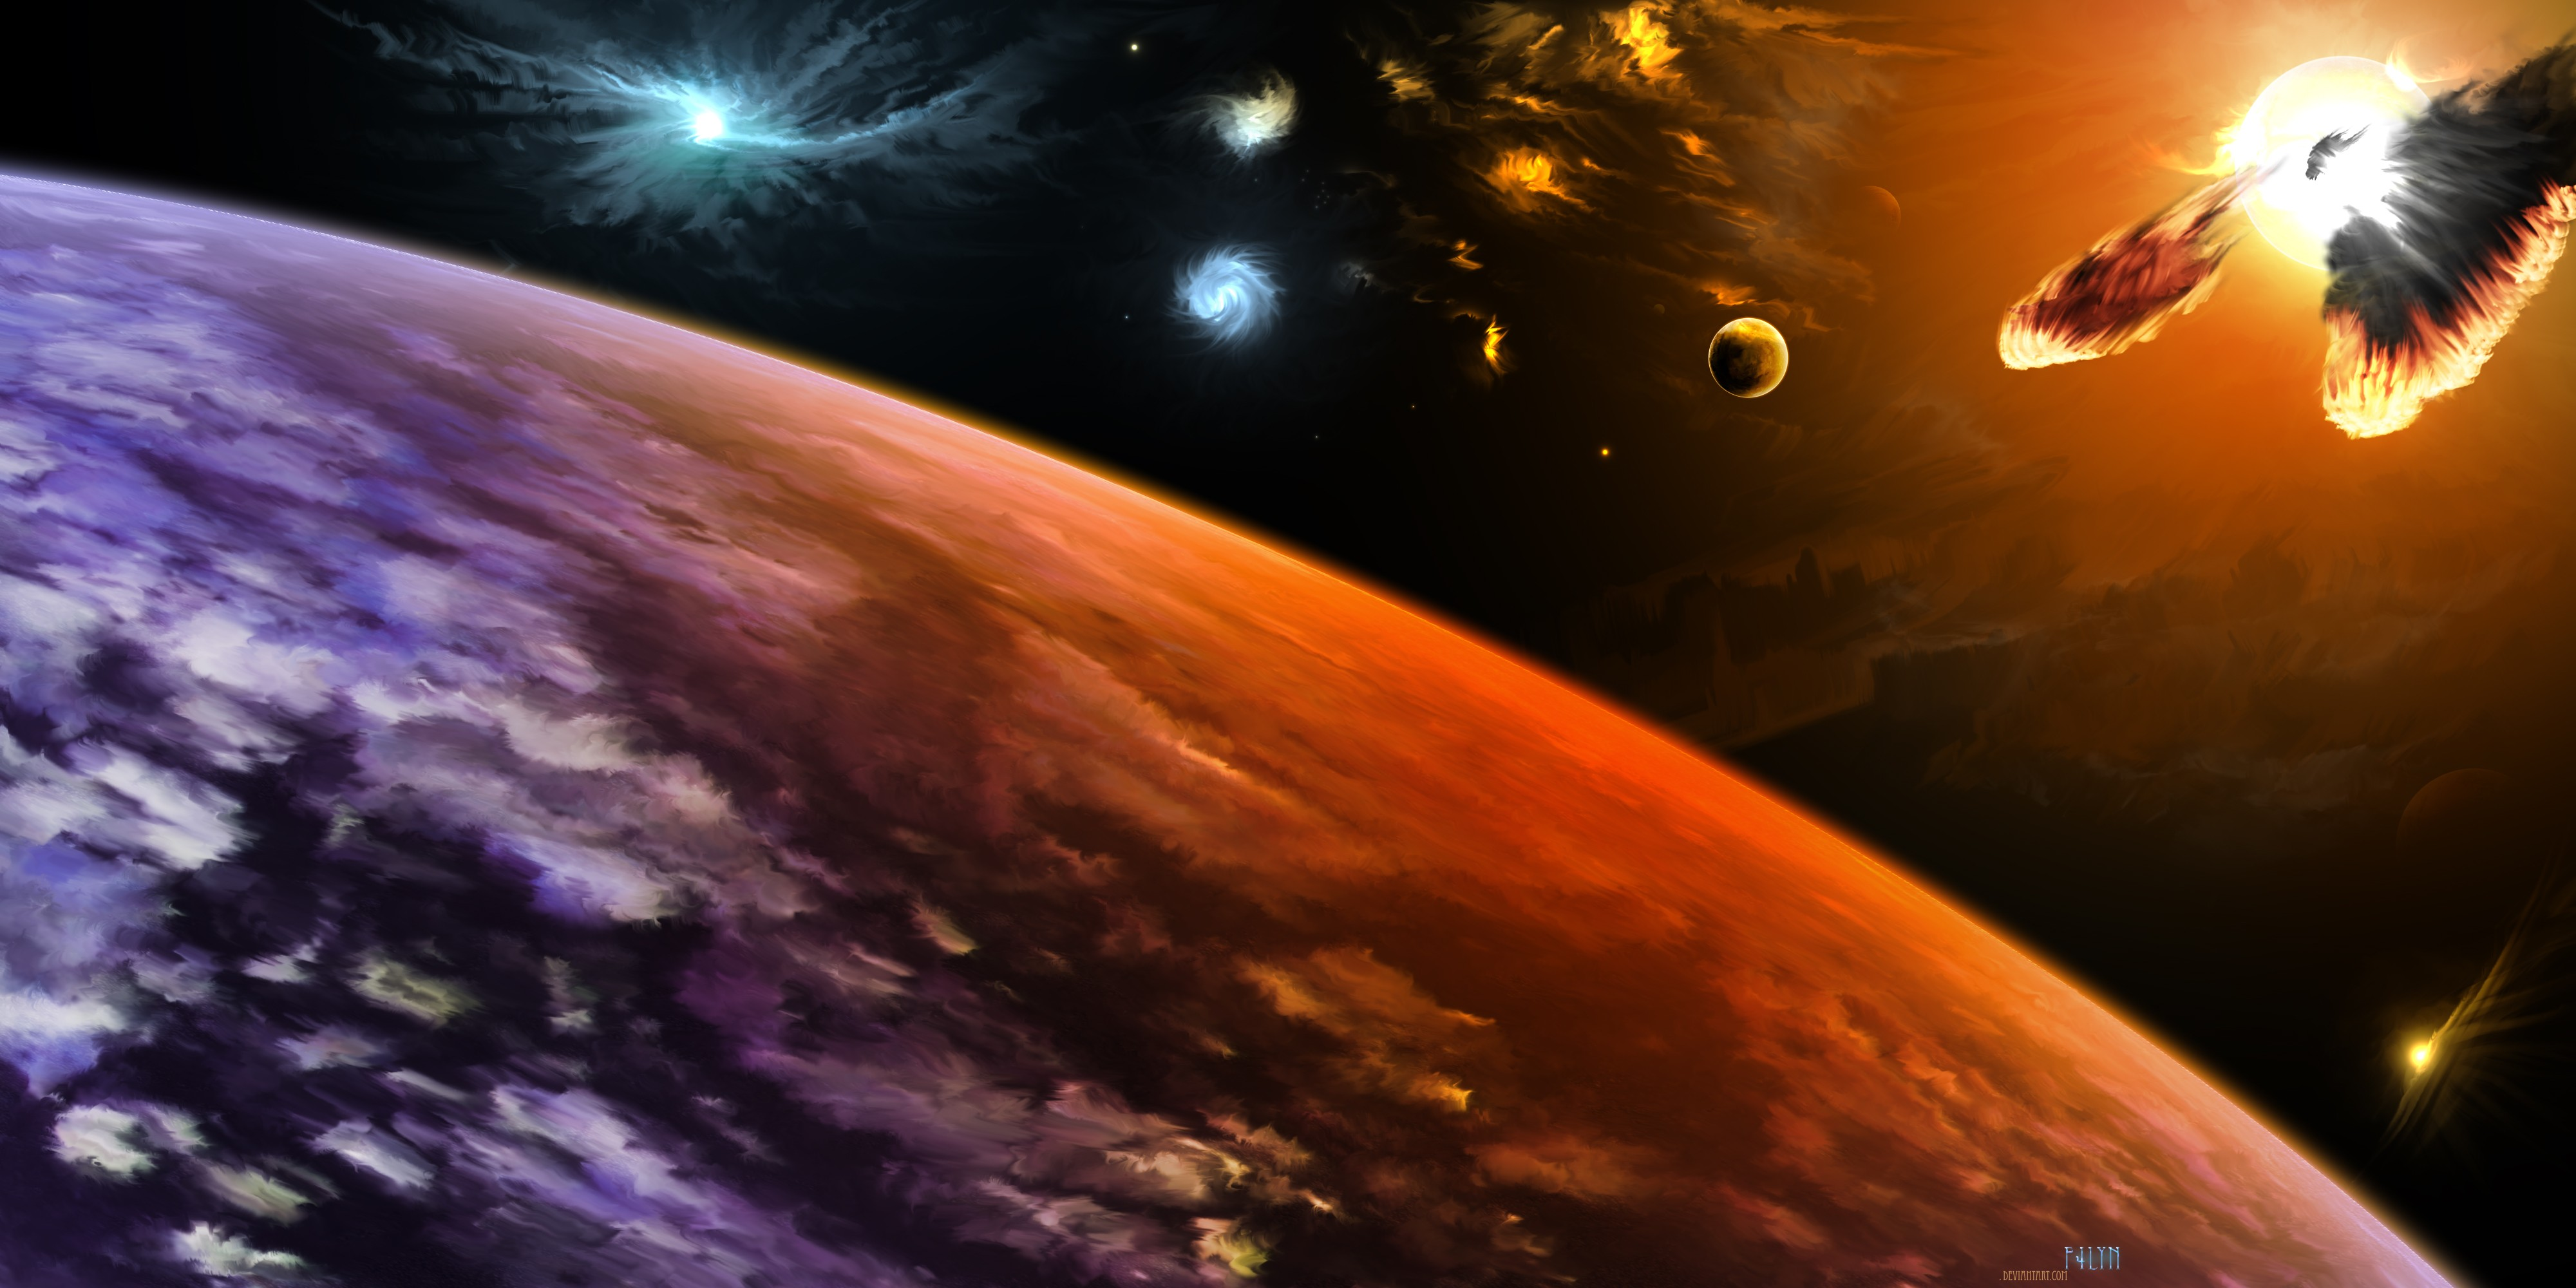 Planet Full HD Wallpaper and Background Image  4000x2000  ID:199811